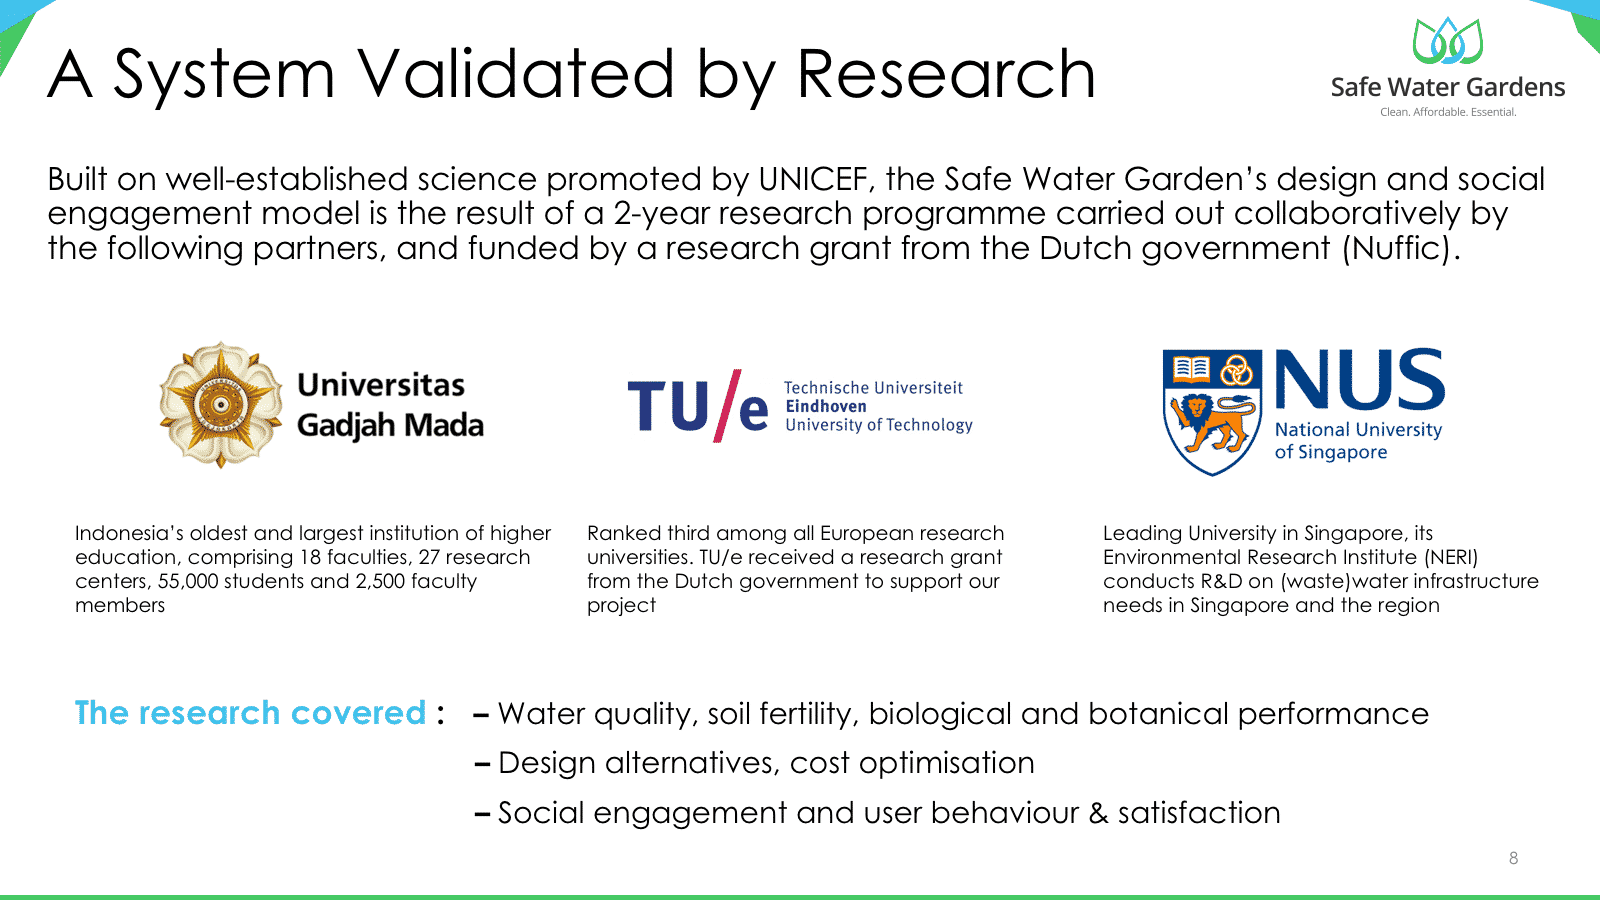 Safe Water Gardens – a system validated by research